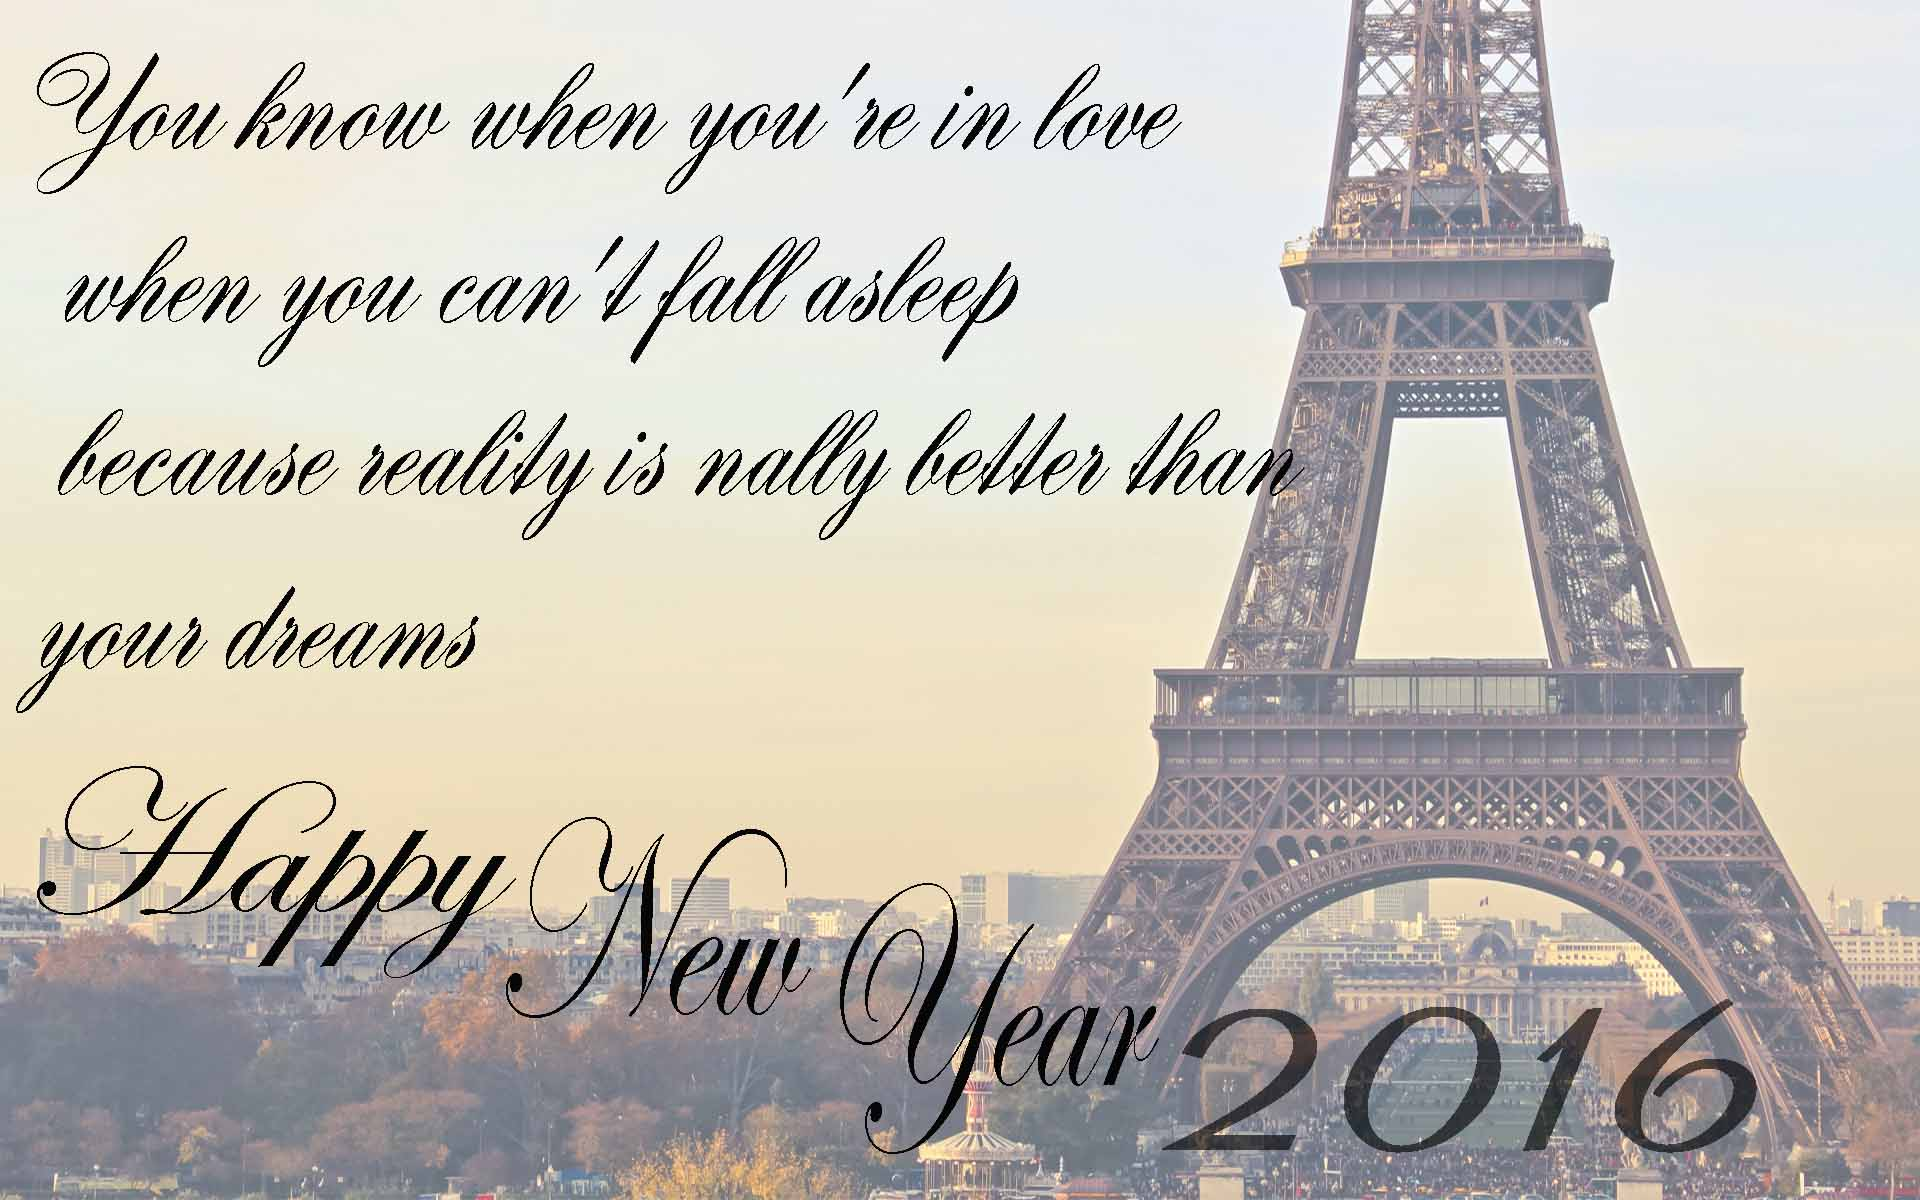 Happy New Year Love Wallpapers 2016 - Wallpaper cave